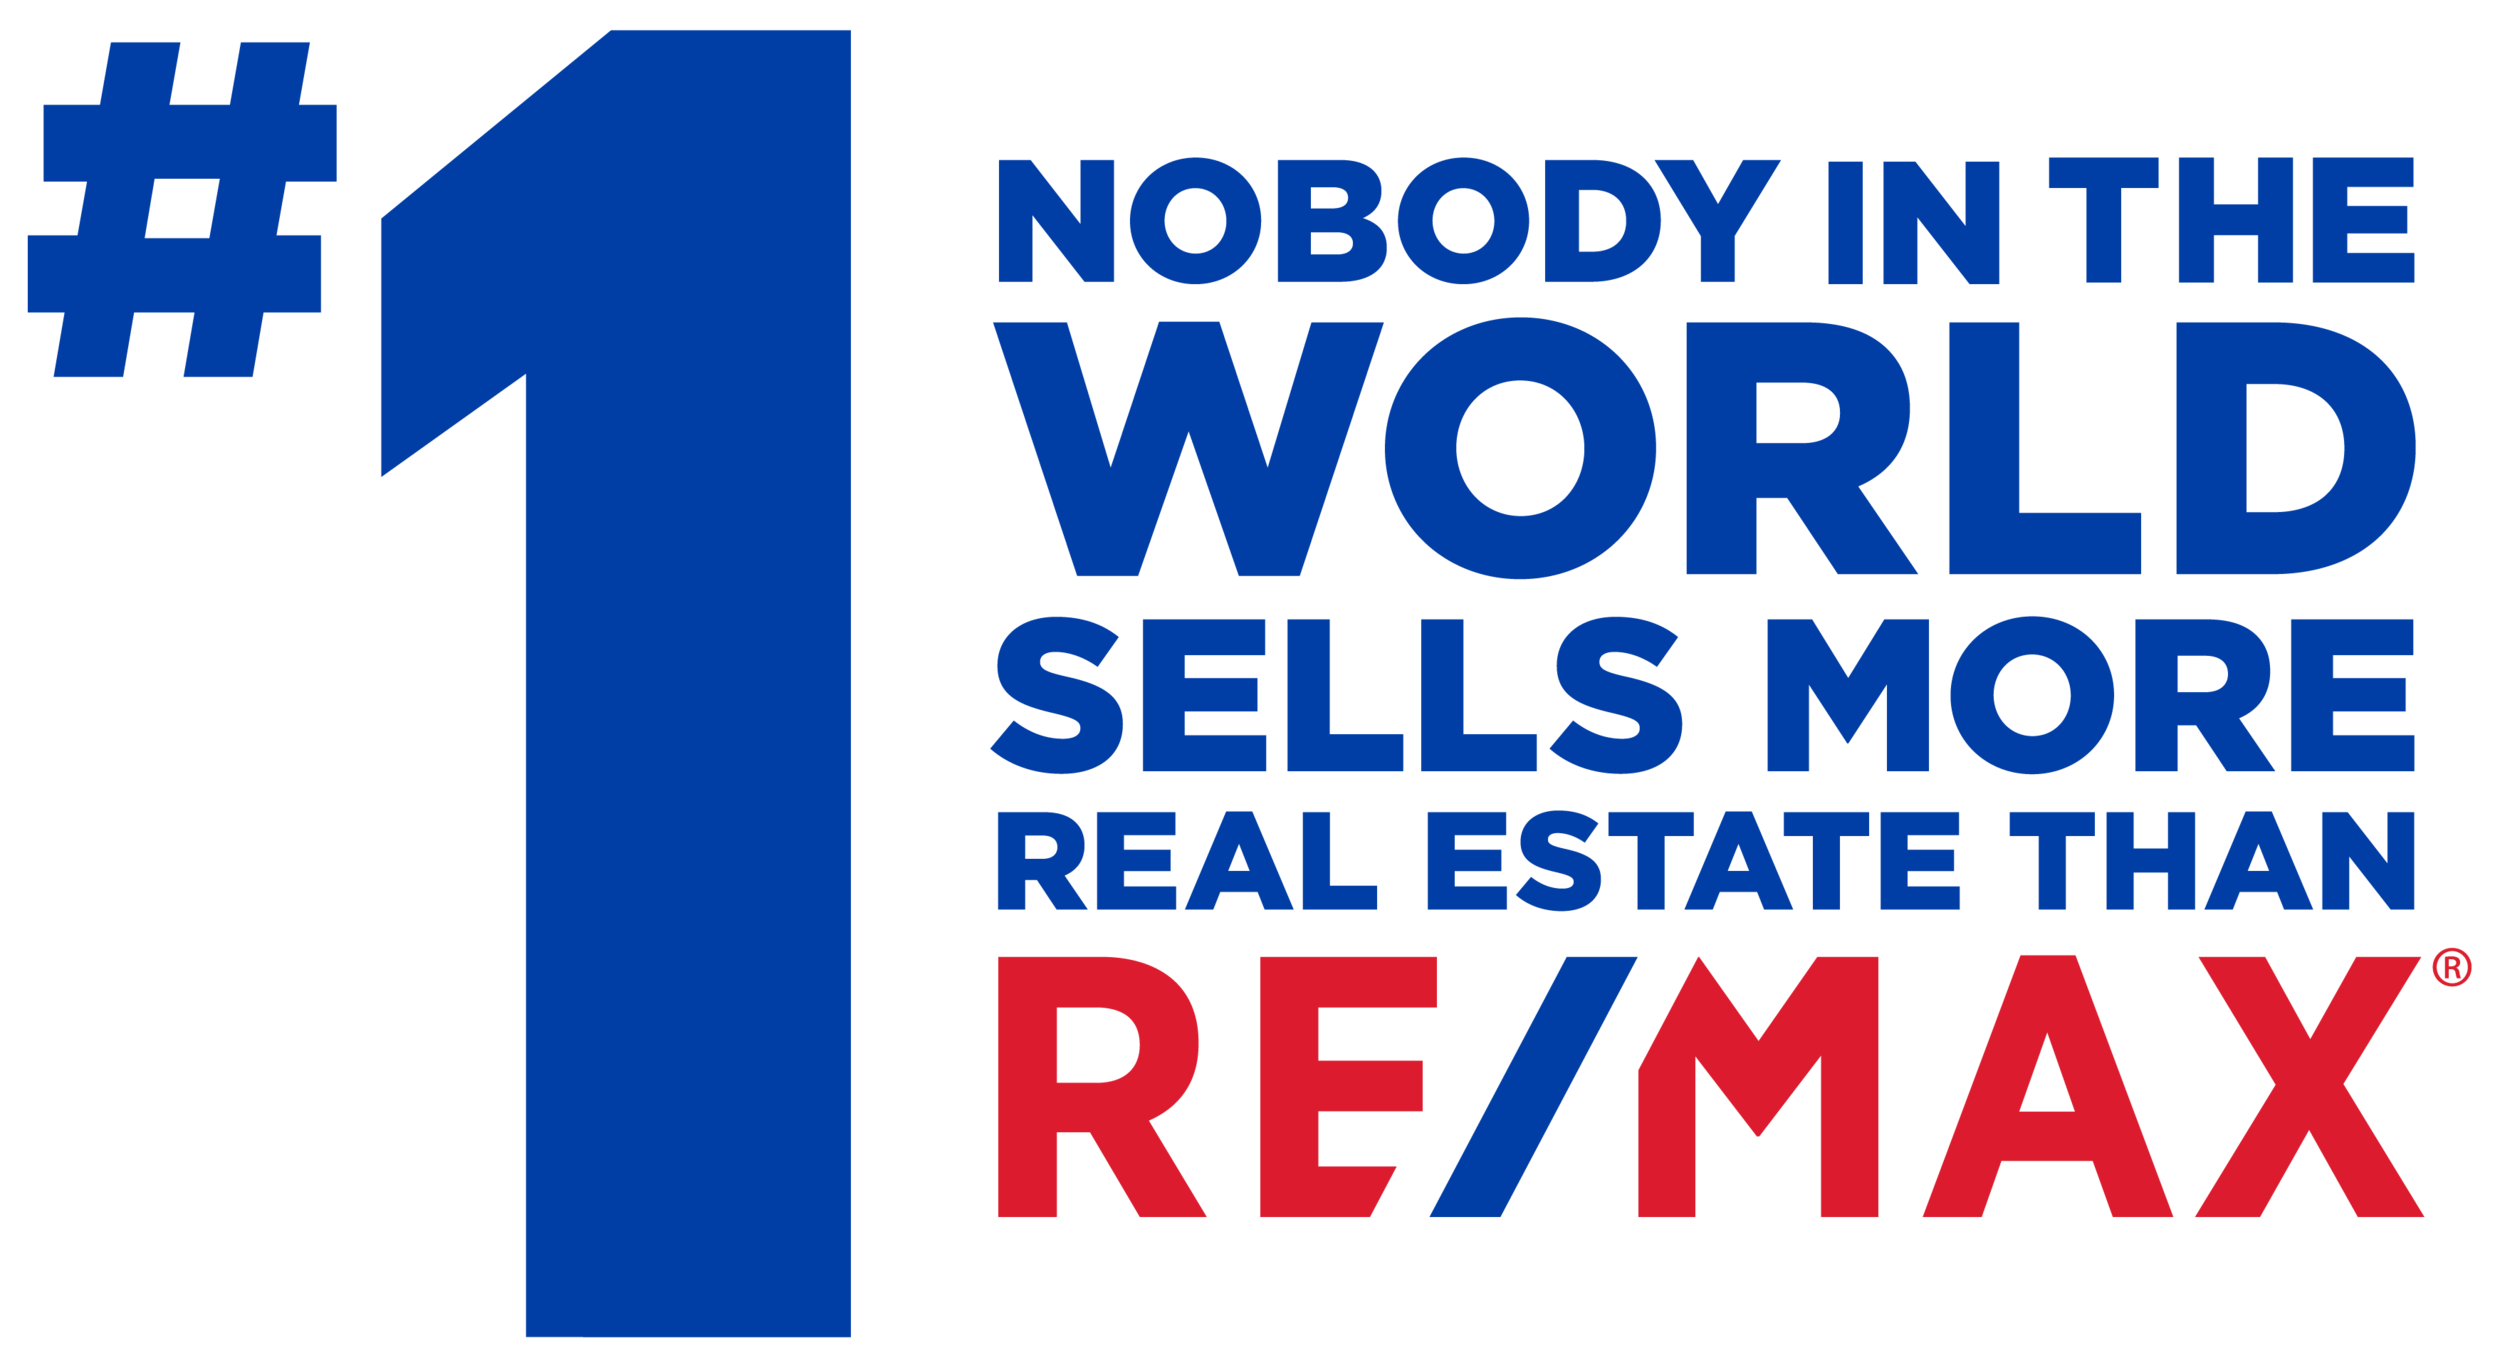 1_REMAX_Lockup_RGB.jpg